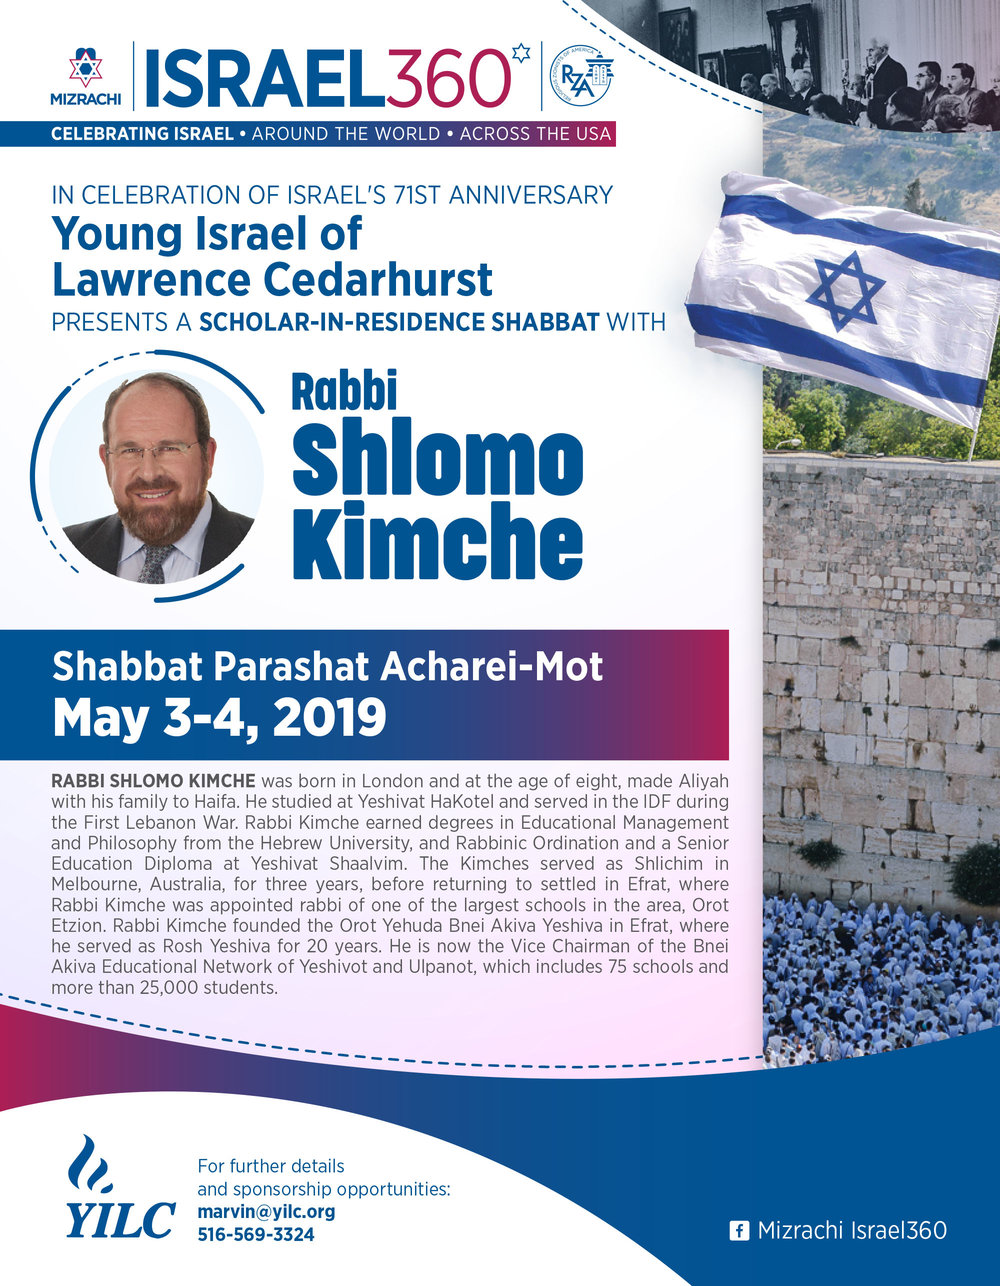 YILC - Rabbi Shlomo Kimche.jpg